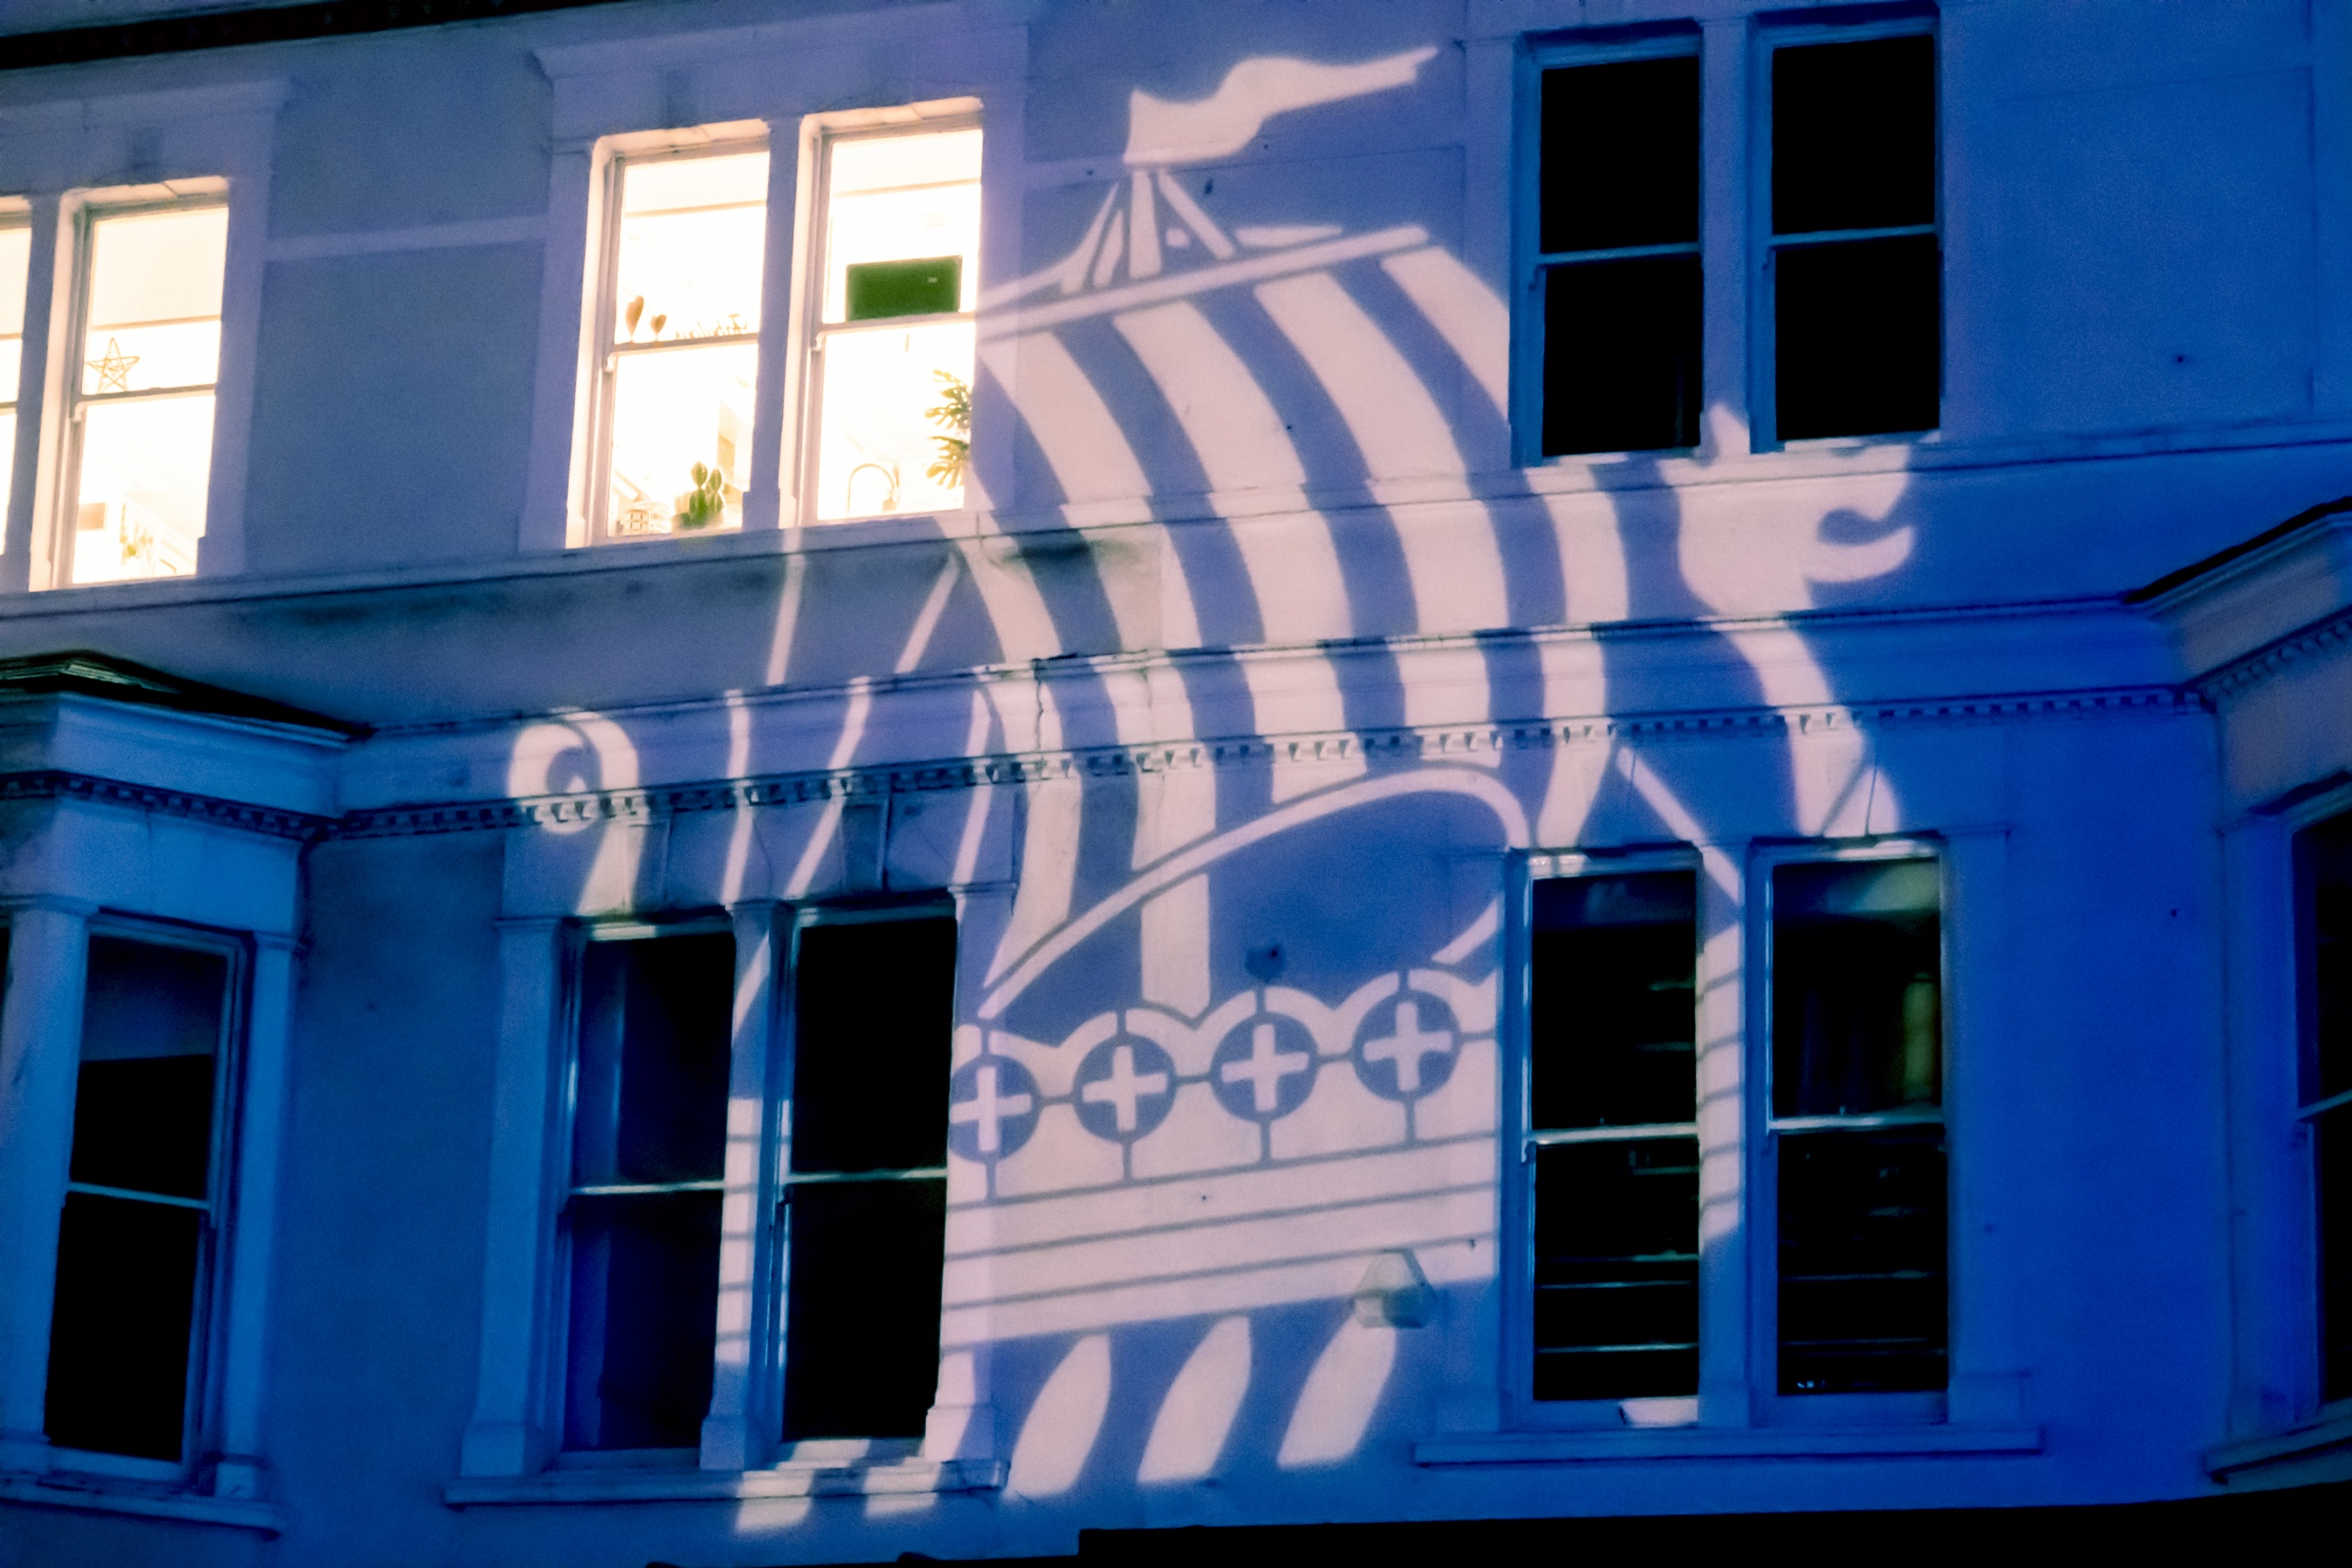 Coloured outdoor lighting and gobo projection at the Llandudno Winter Light / Golau Gaeaf event, in North Wales. A building on Mostyn Street is illuminated in blue with a white gobo of a Viking ship.